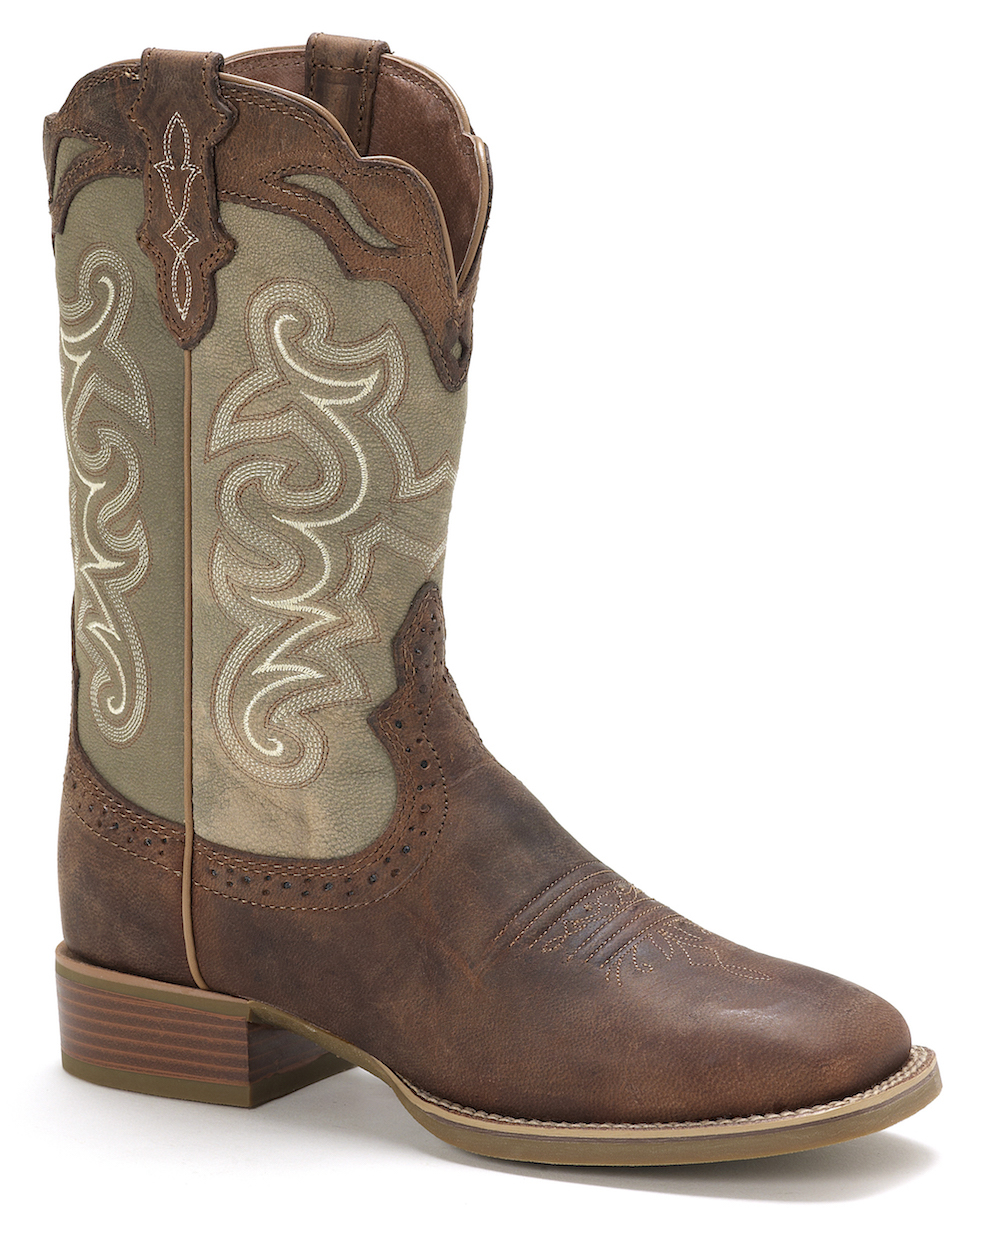 Womens Justin SVL7211 Square Toe Cowboy Boot